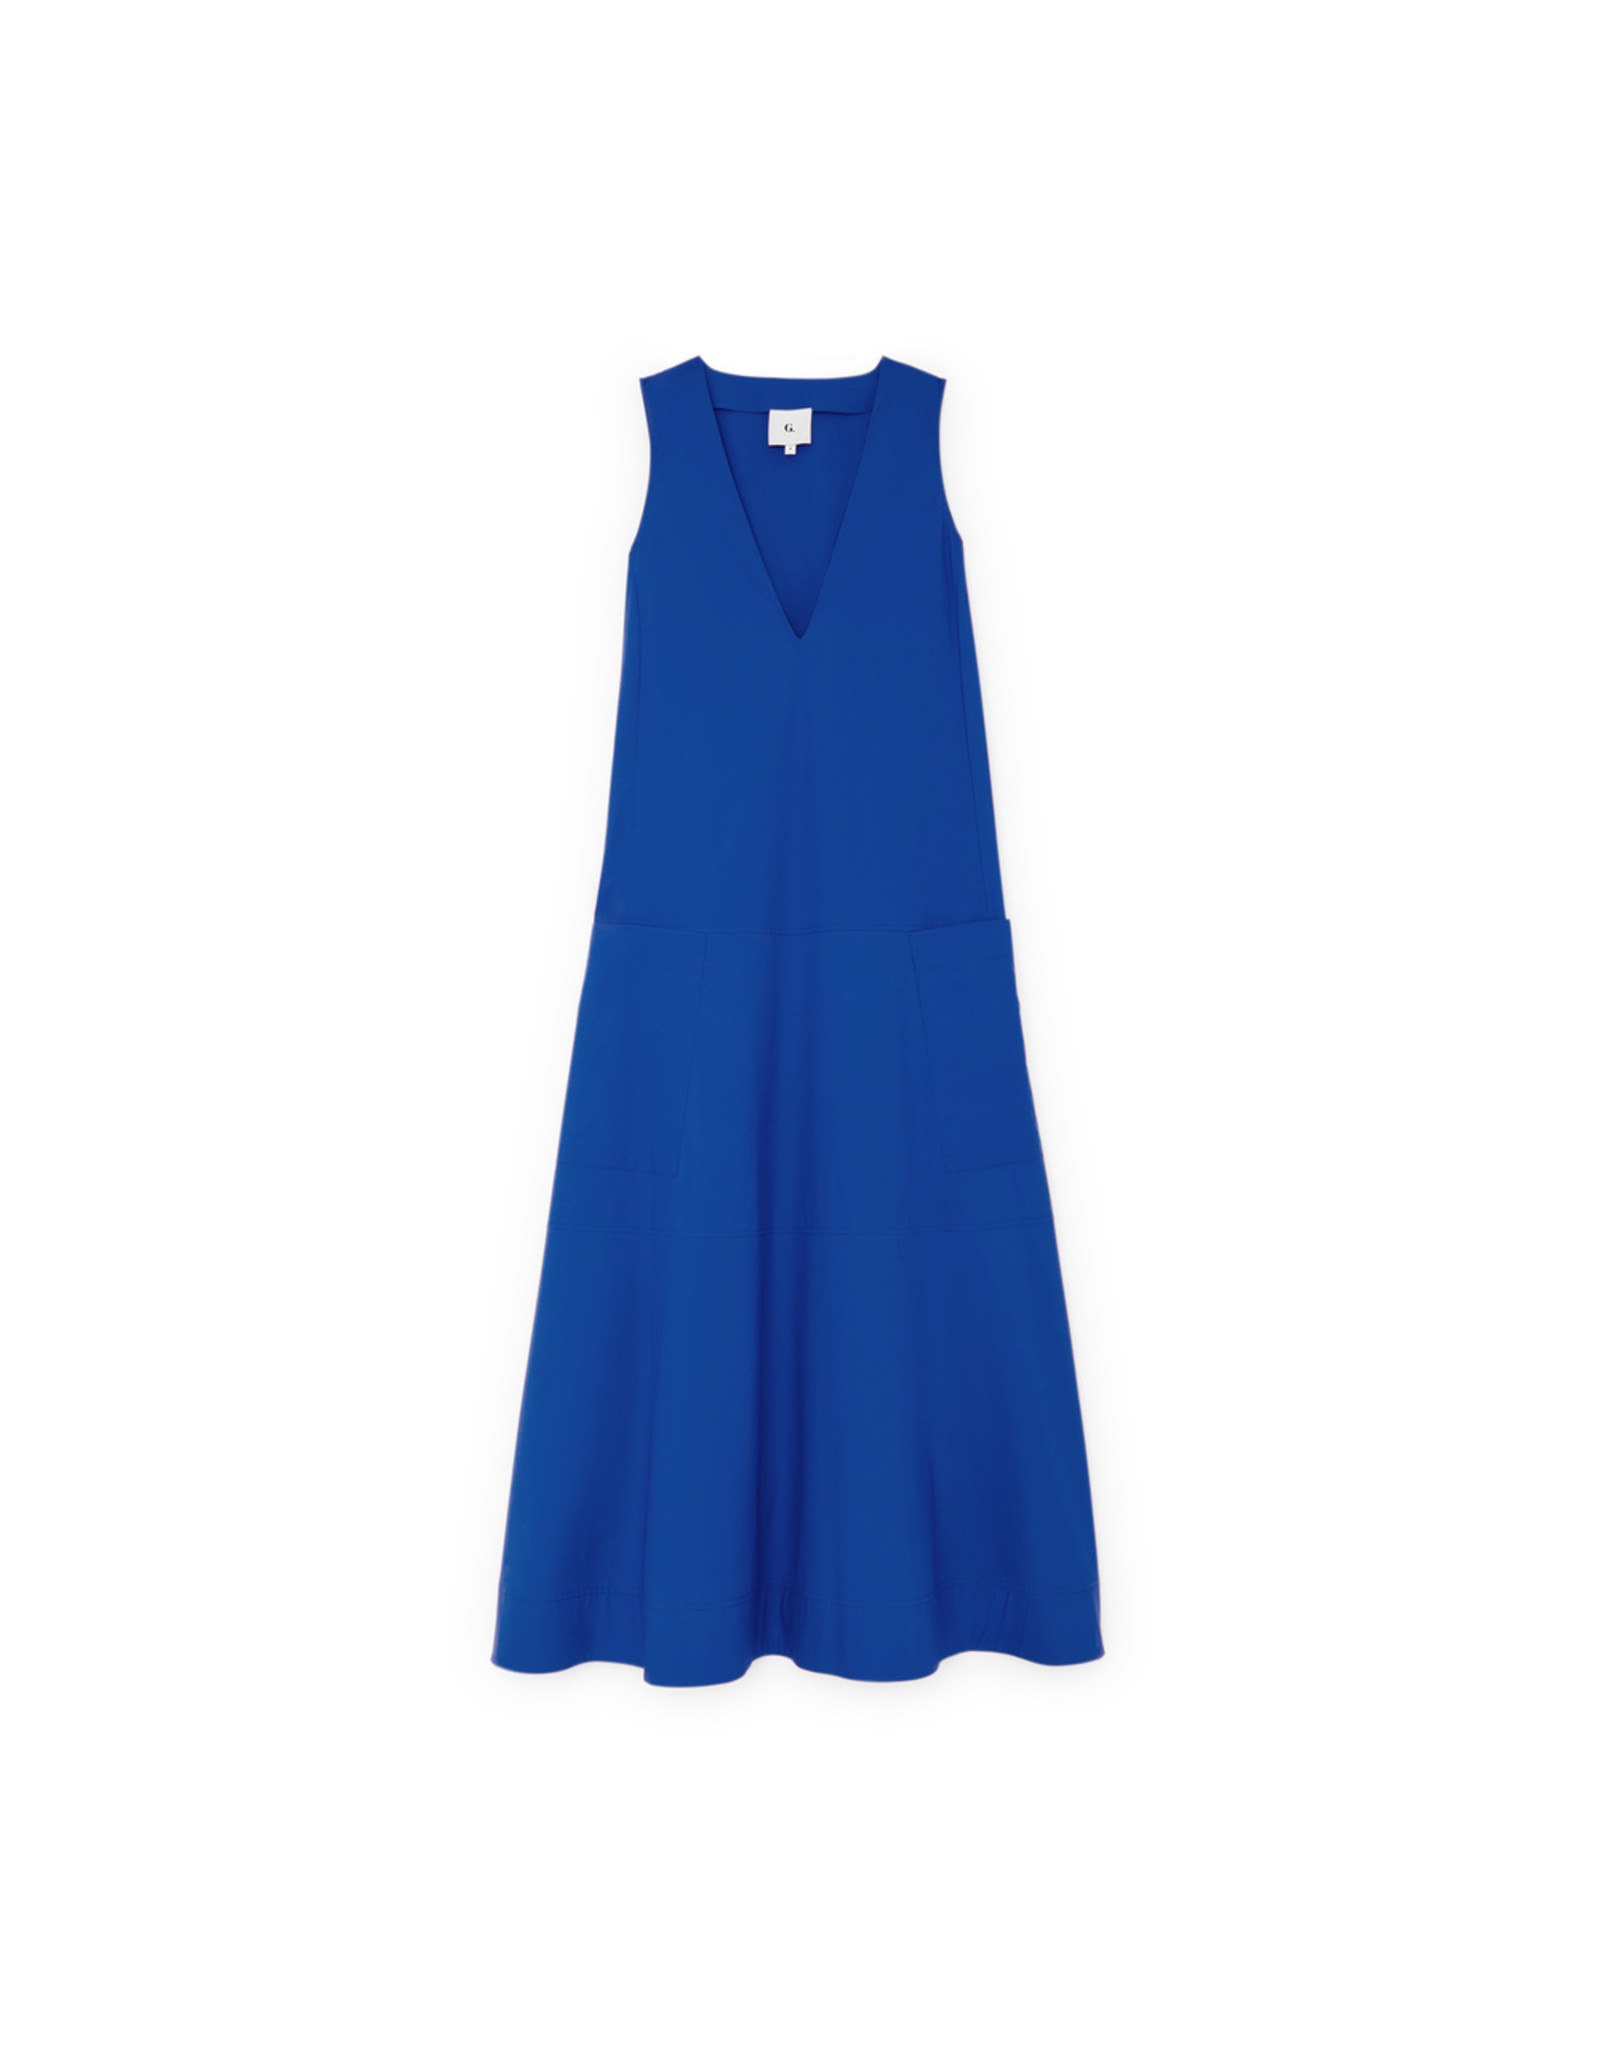 G. Label Maiya Housedress (Color: Blue, Size: 6)